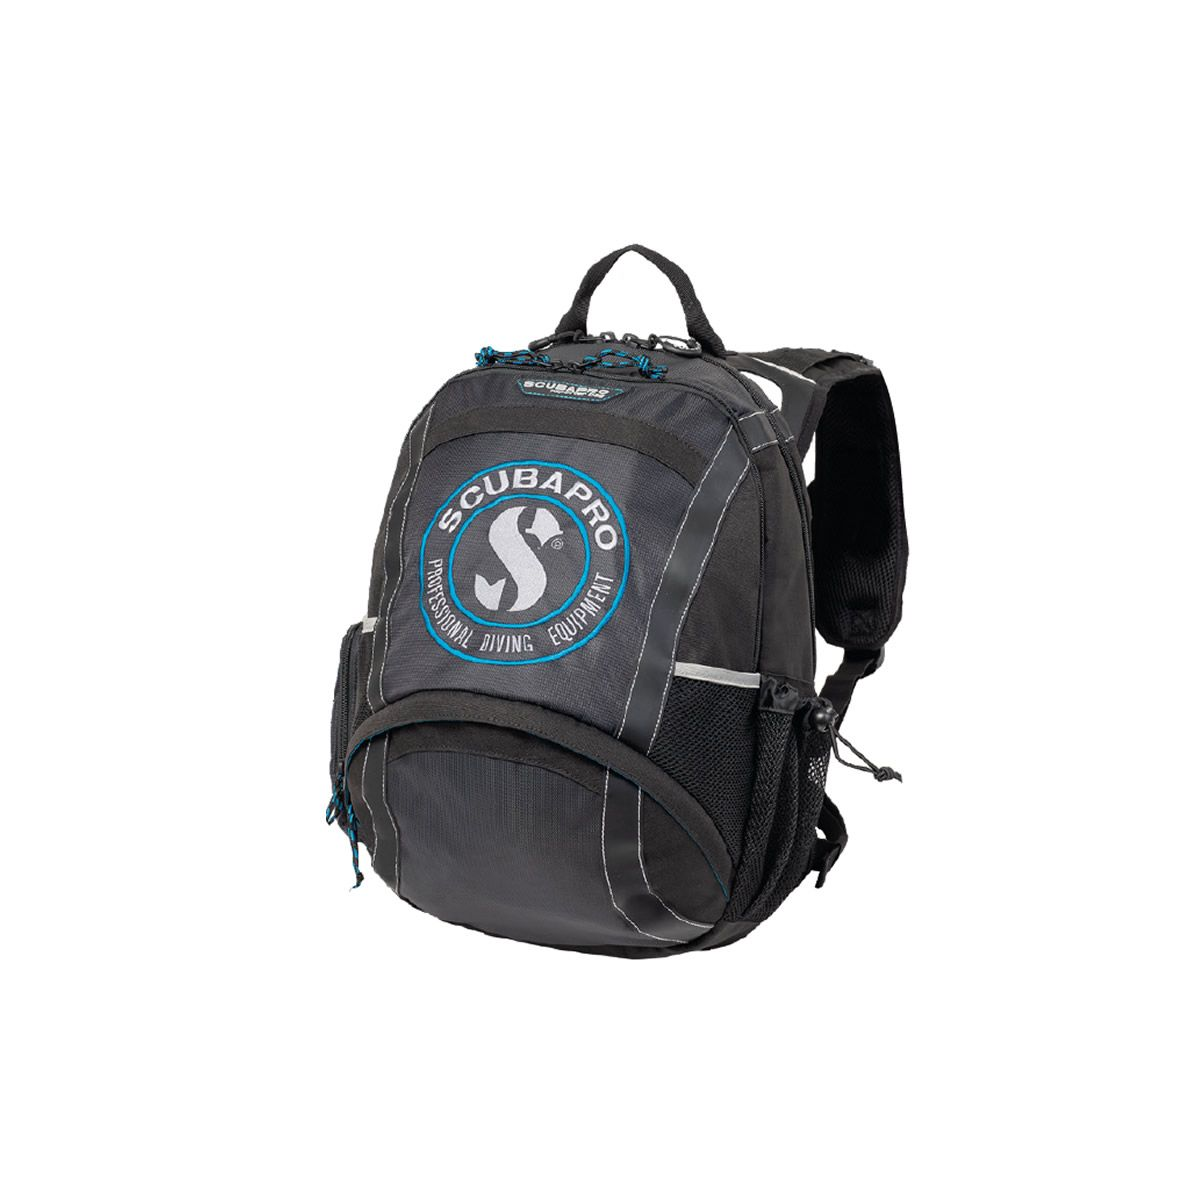 42fb9c37dbc Best Divers Tank Backpack With Shoulder Straps | The Shred Centre